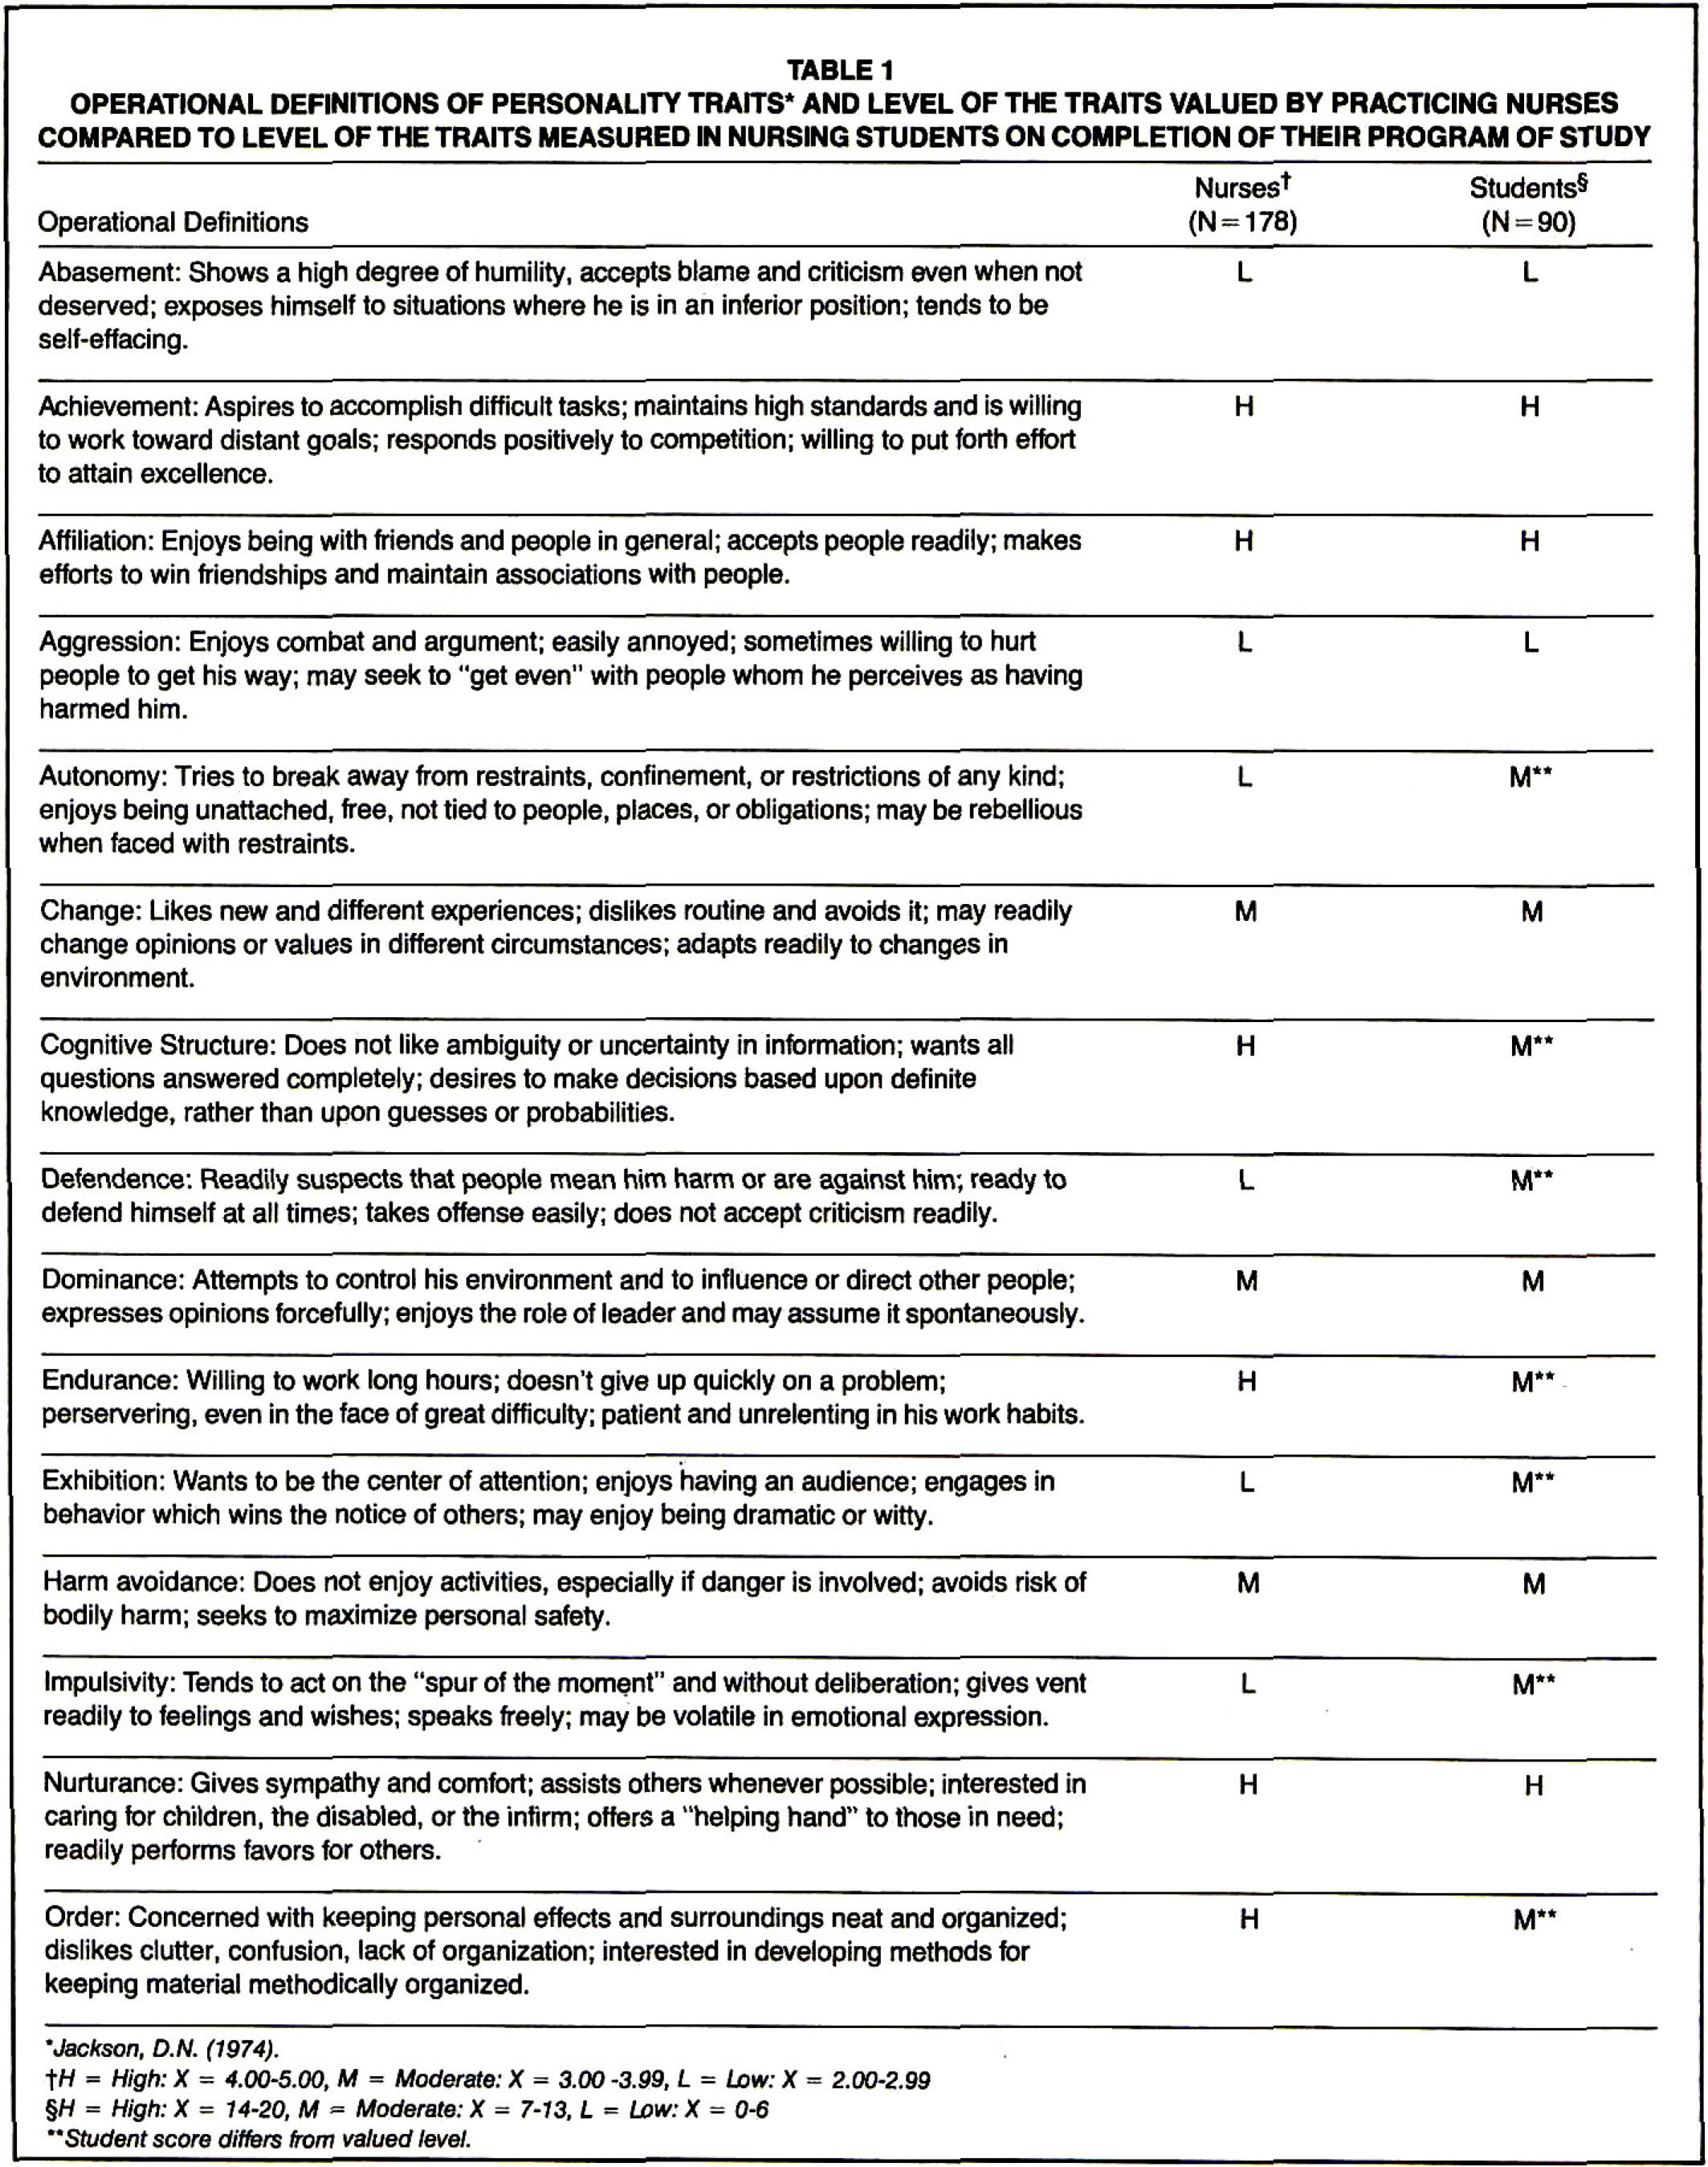 personality traits valued by practicing nurses and measured in operational definitions of personality traits and level of the traits valued by practicing nurses compared